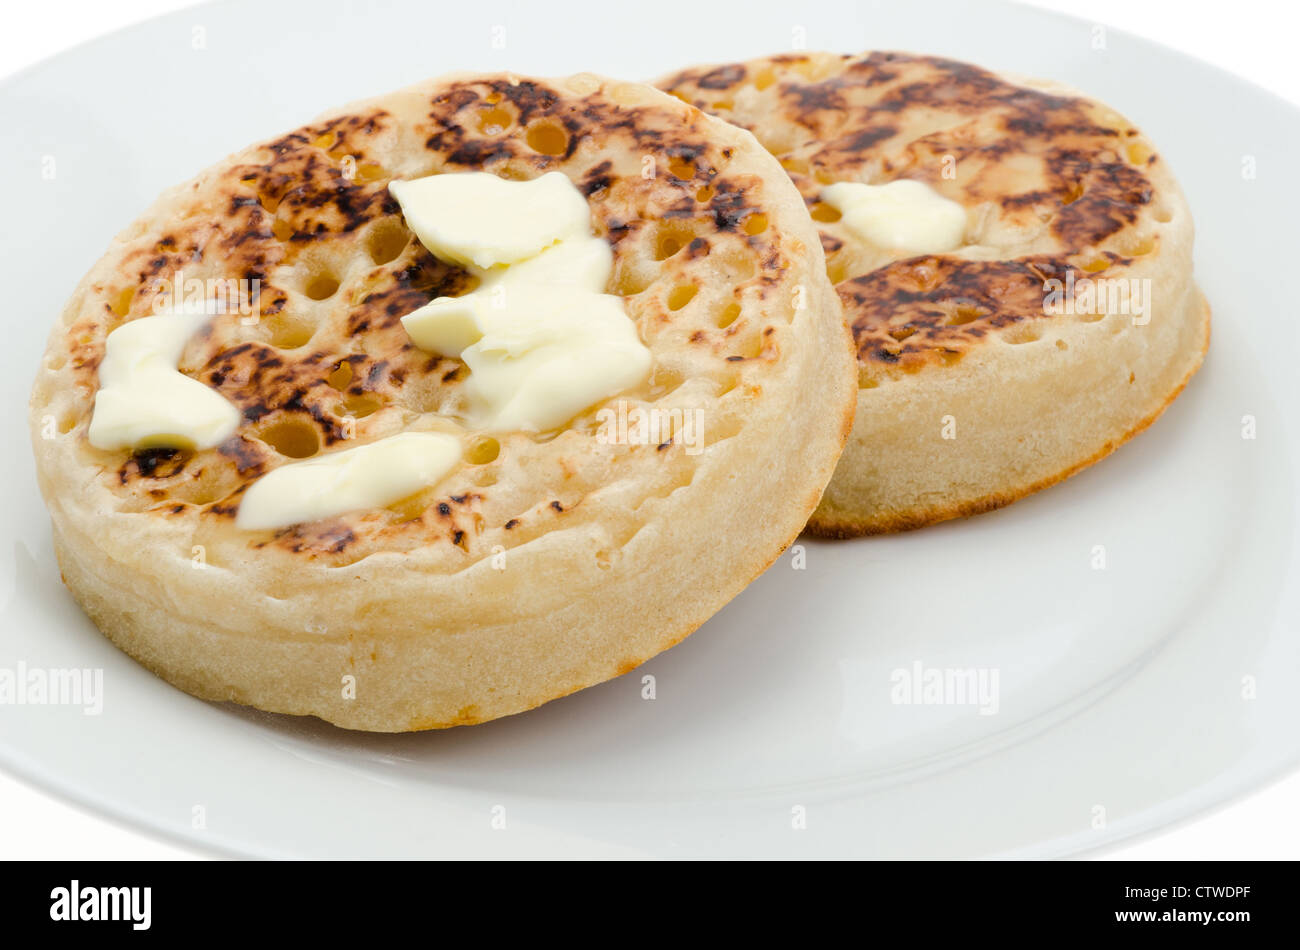 Two hot crumpets with melting butter - studio shot with a shallow depth of field and a white background - Stock Image